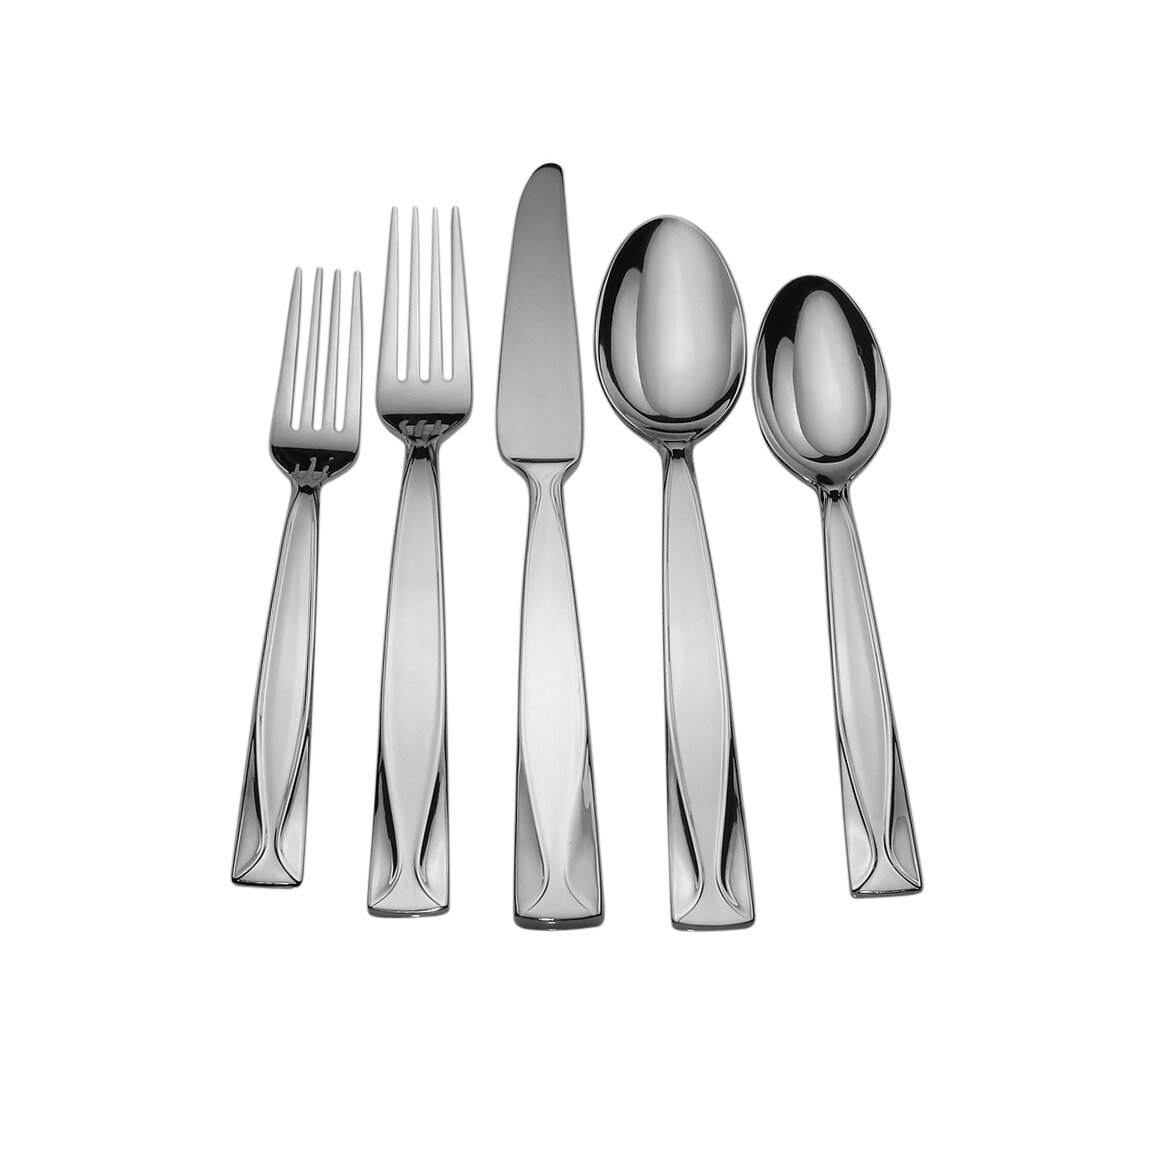 David Shaw Silverware Splendide Fold 20 Piece Flatware Set Wayfair